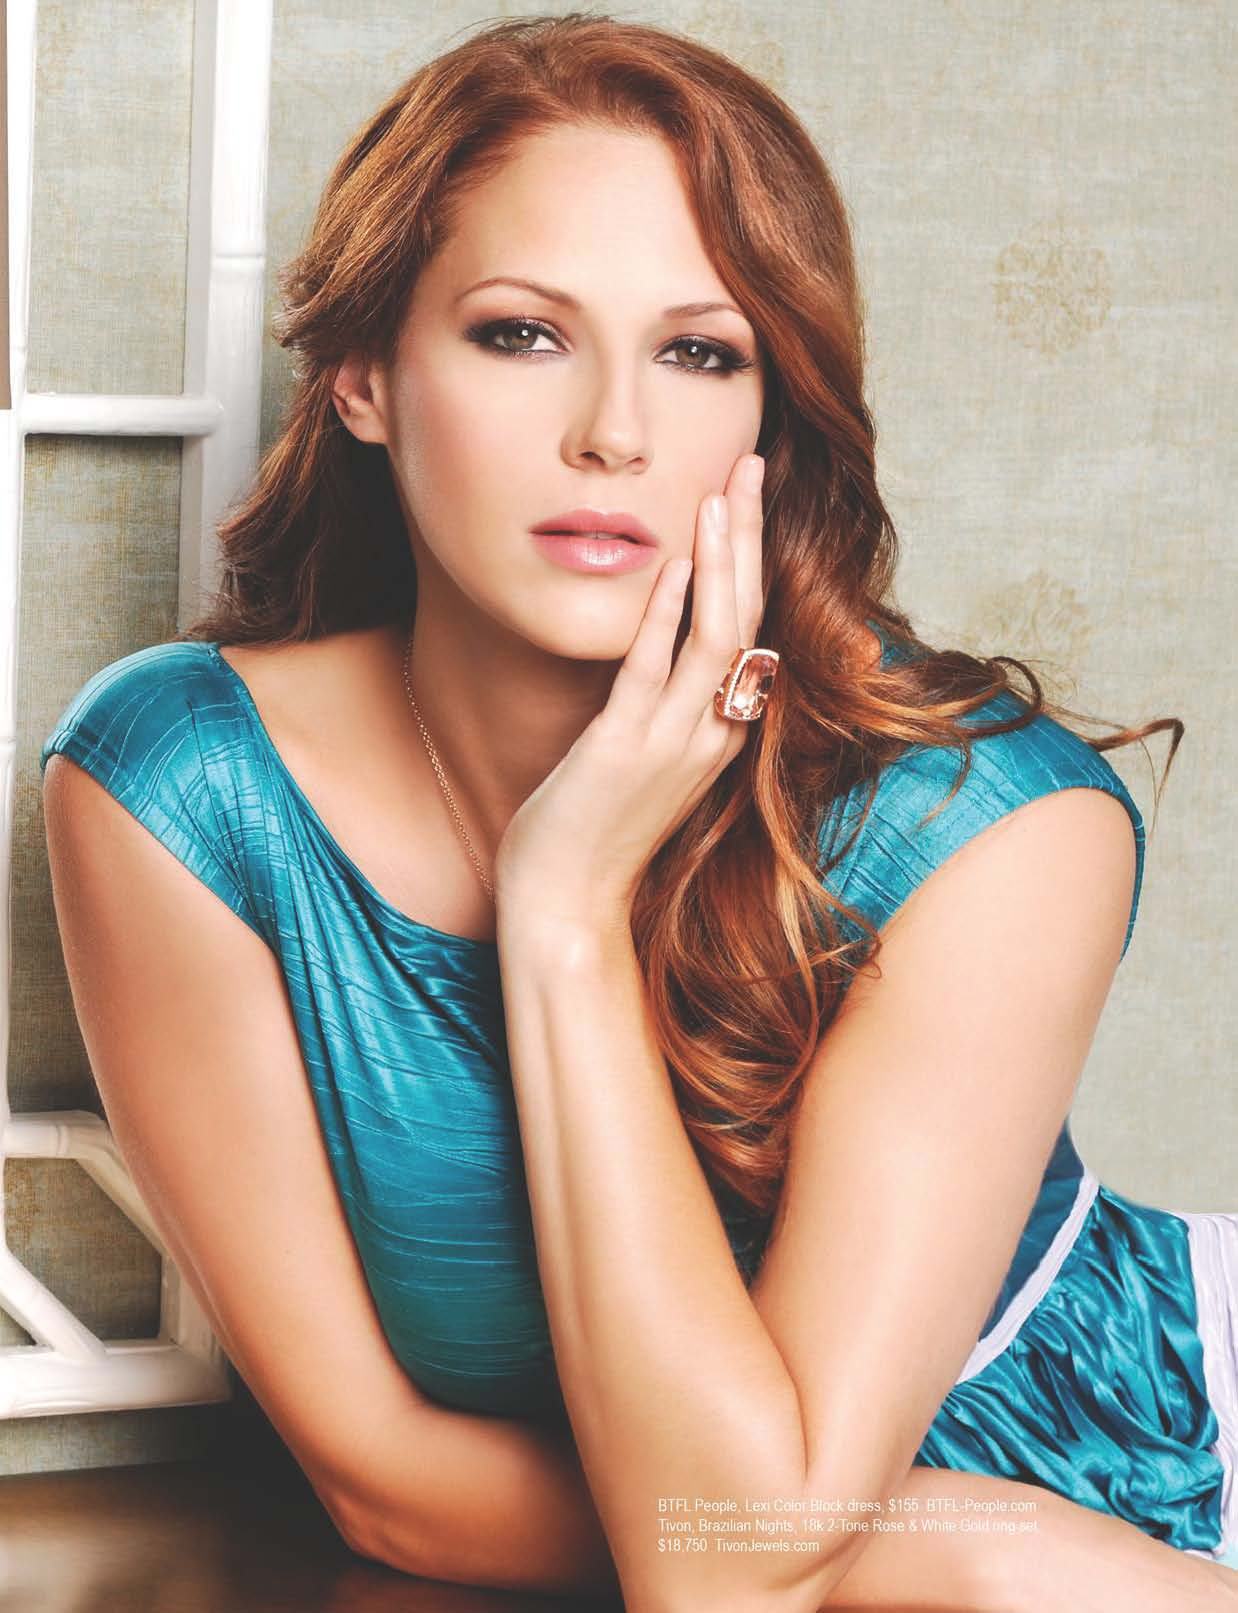 https://www.theplace.ru/archive/amanda_righetti/img/3-70.jpg